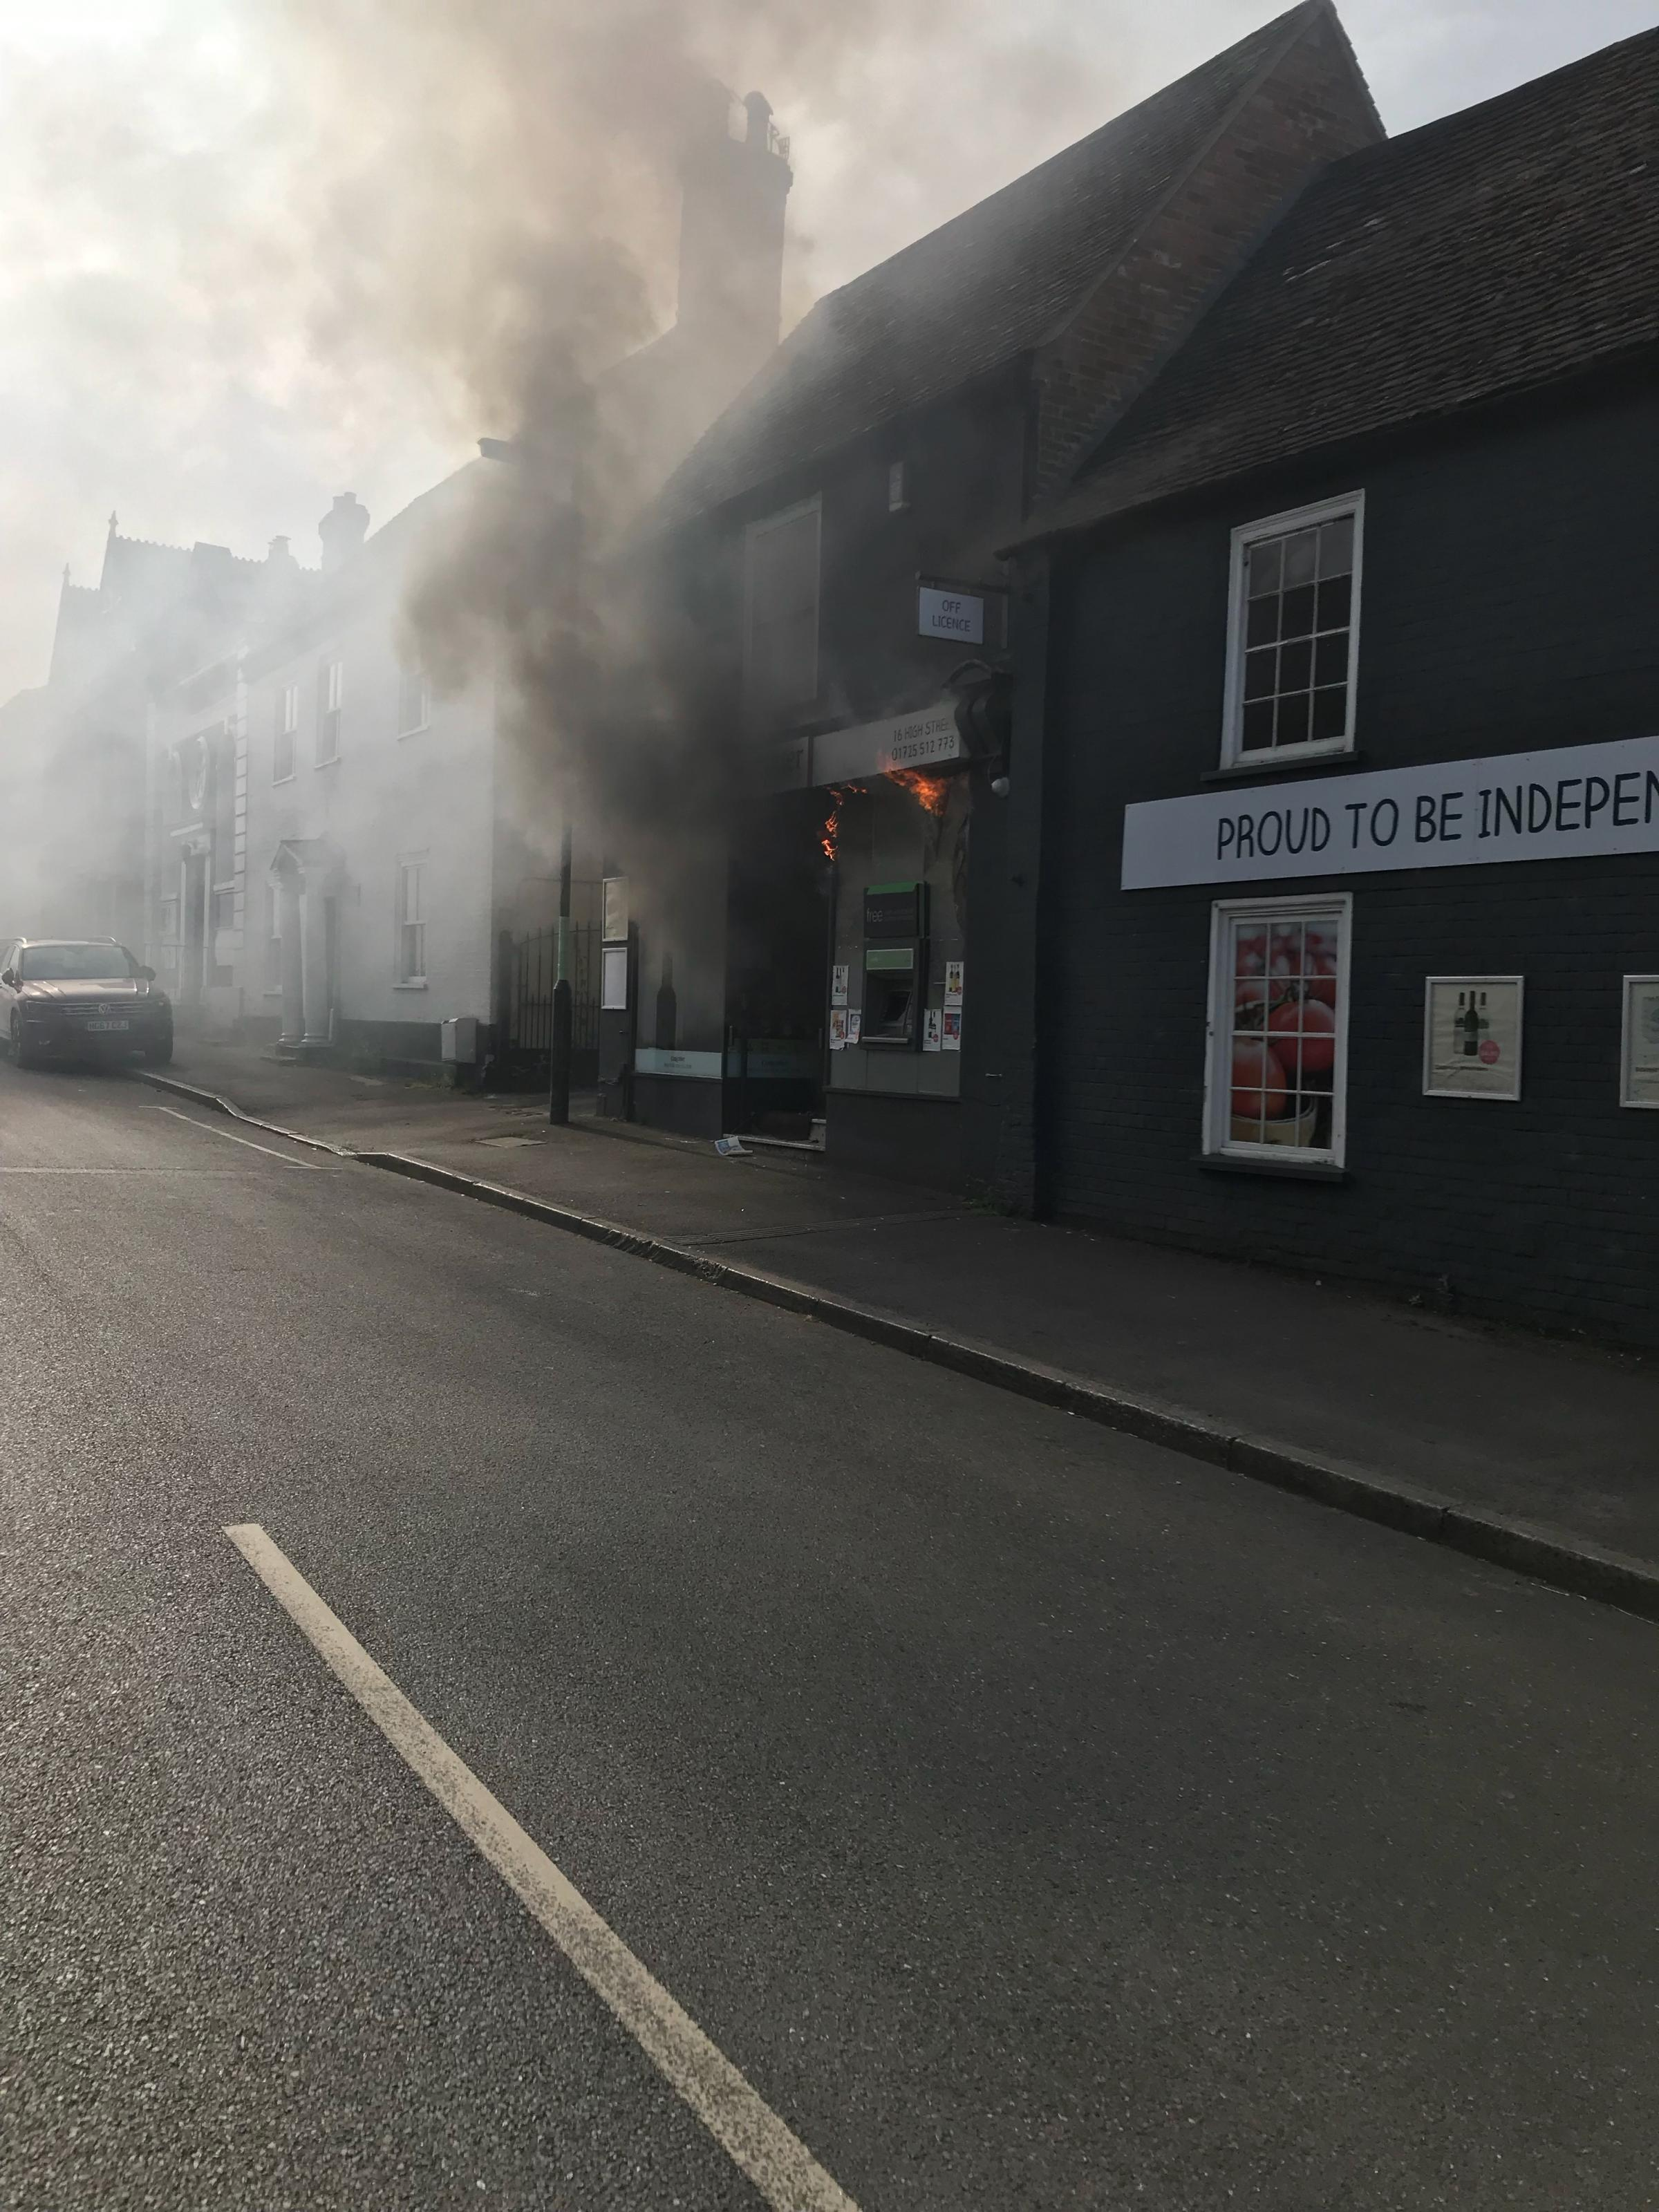 Smoke and flames coming from Costcutter in Downton  Picture by Colin O'Keefe